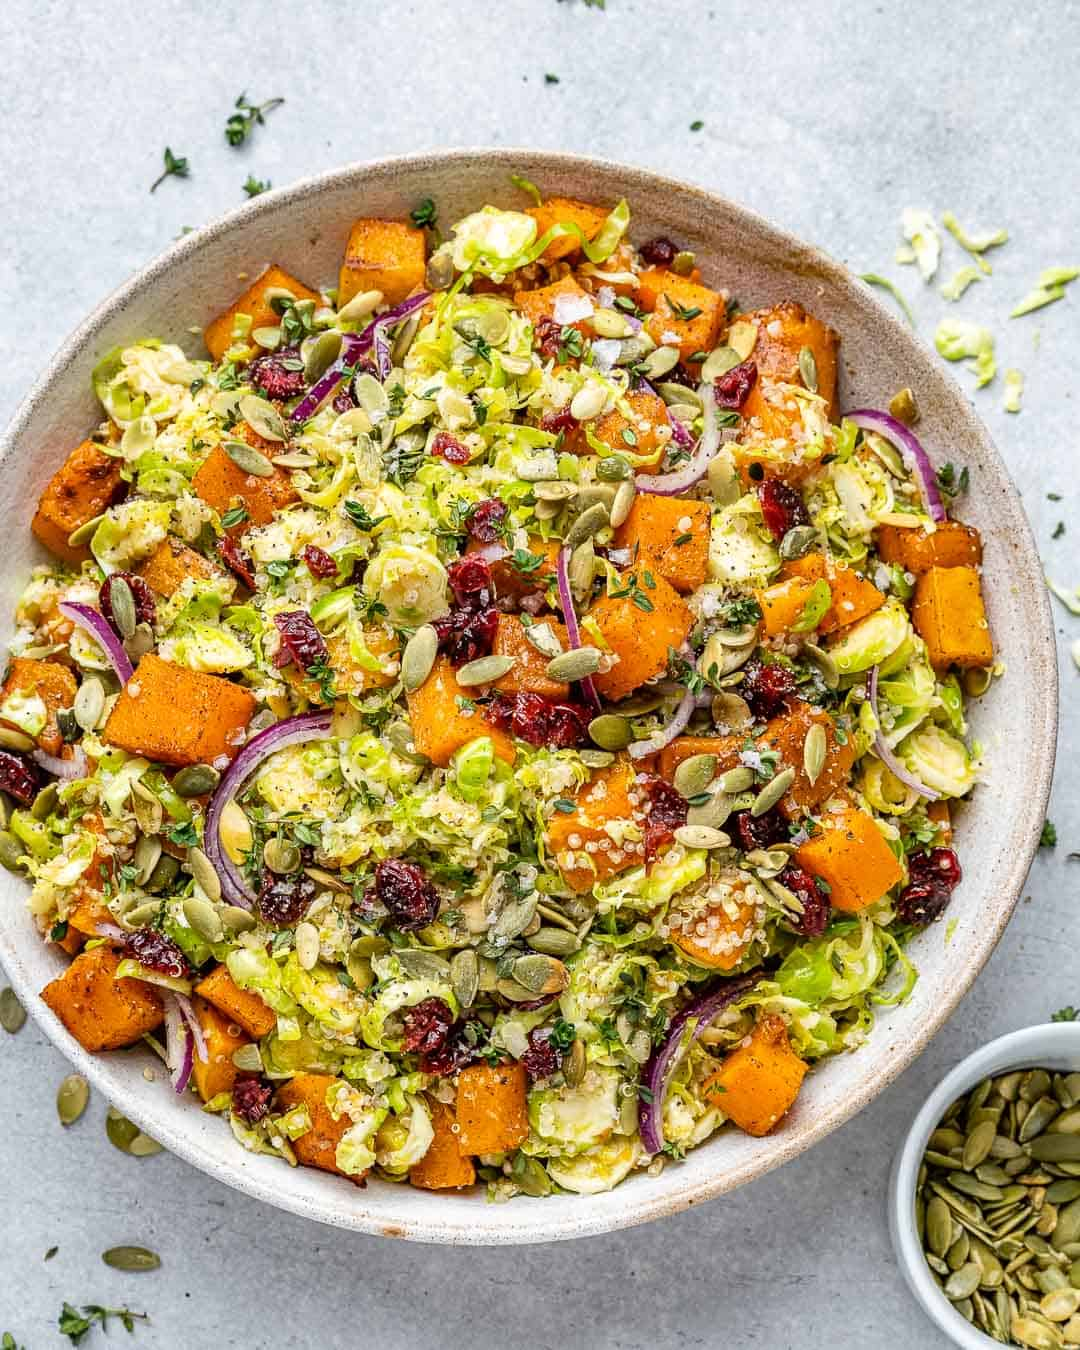 Overhead of bowl with roasted butternut squash and bowl of pumpkin seeds.